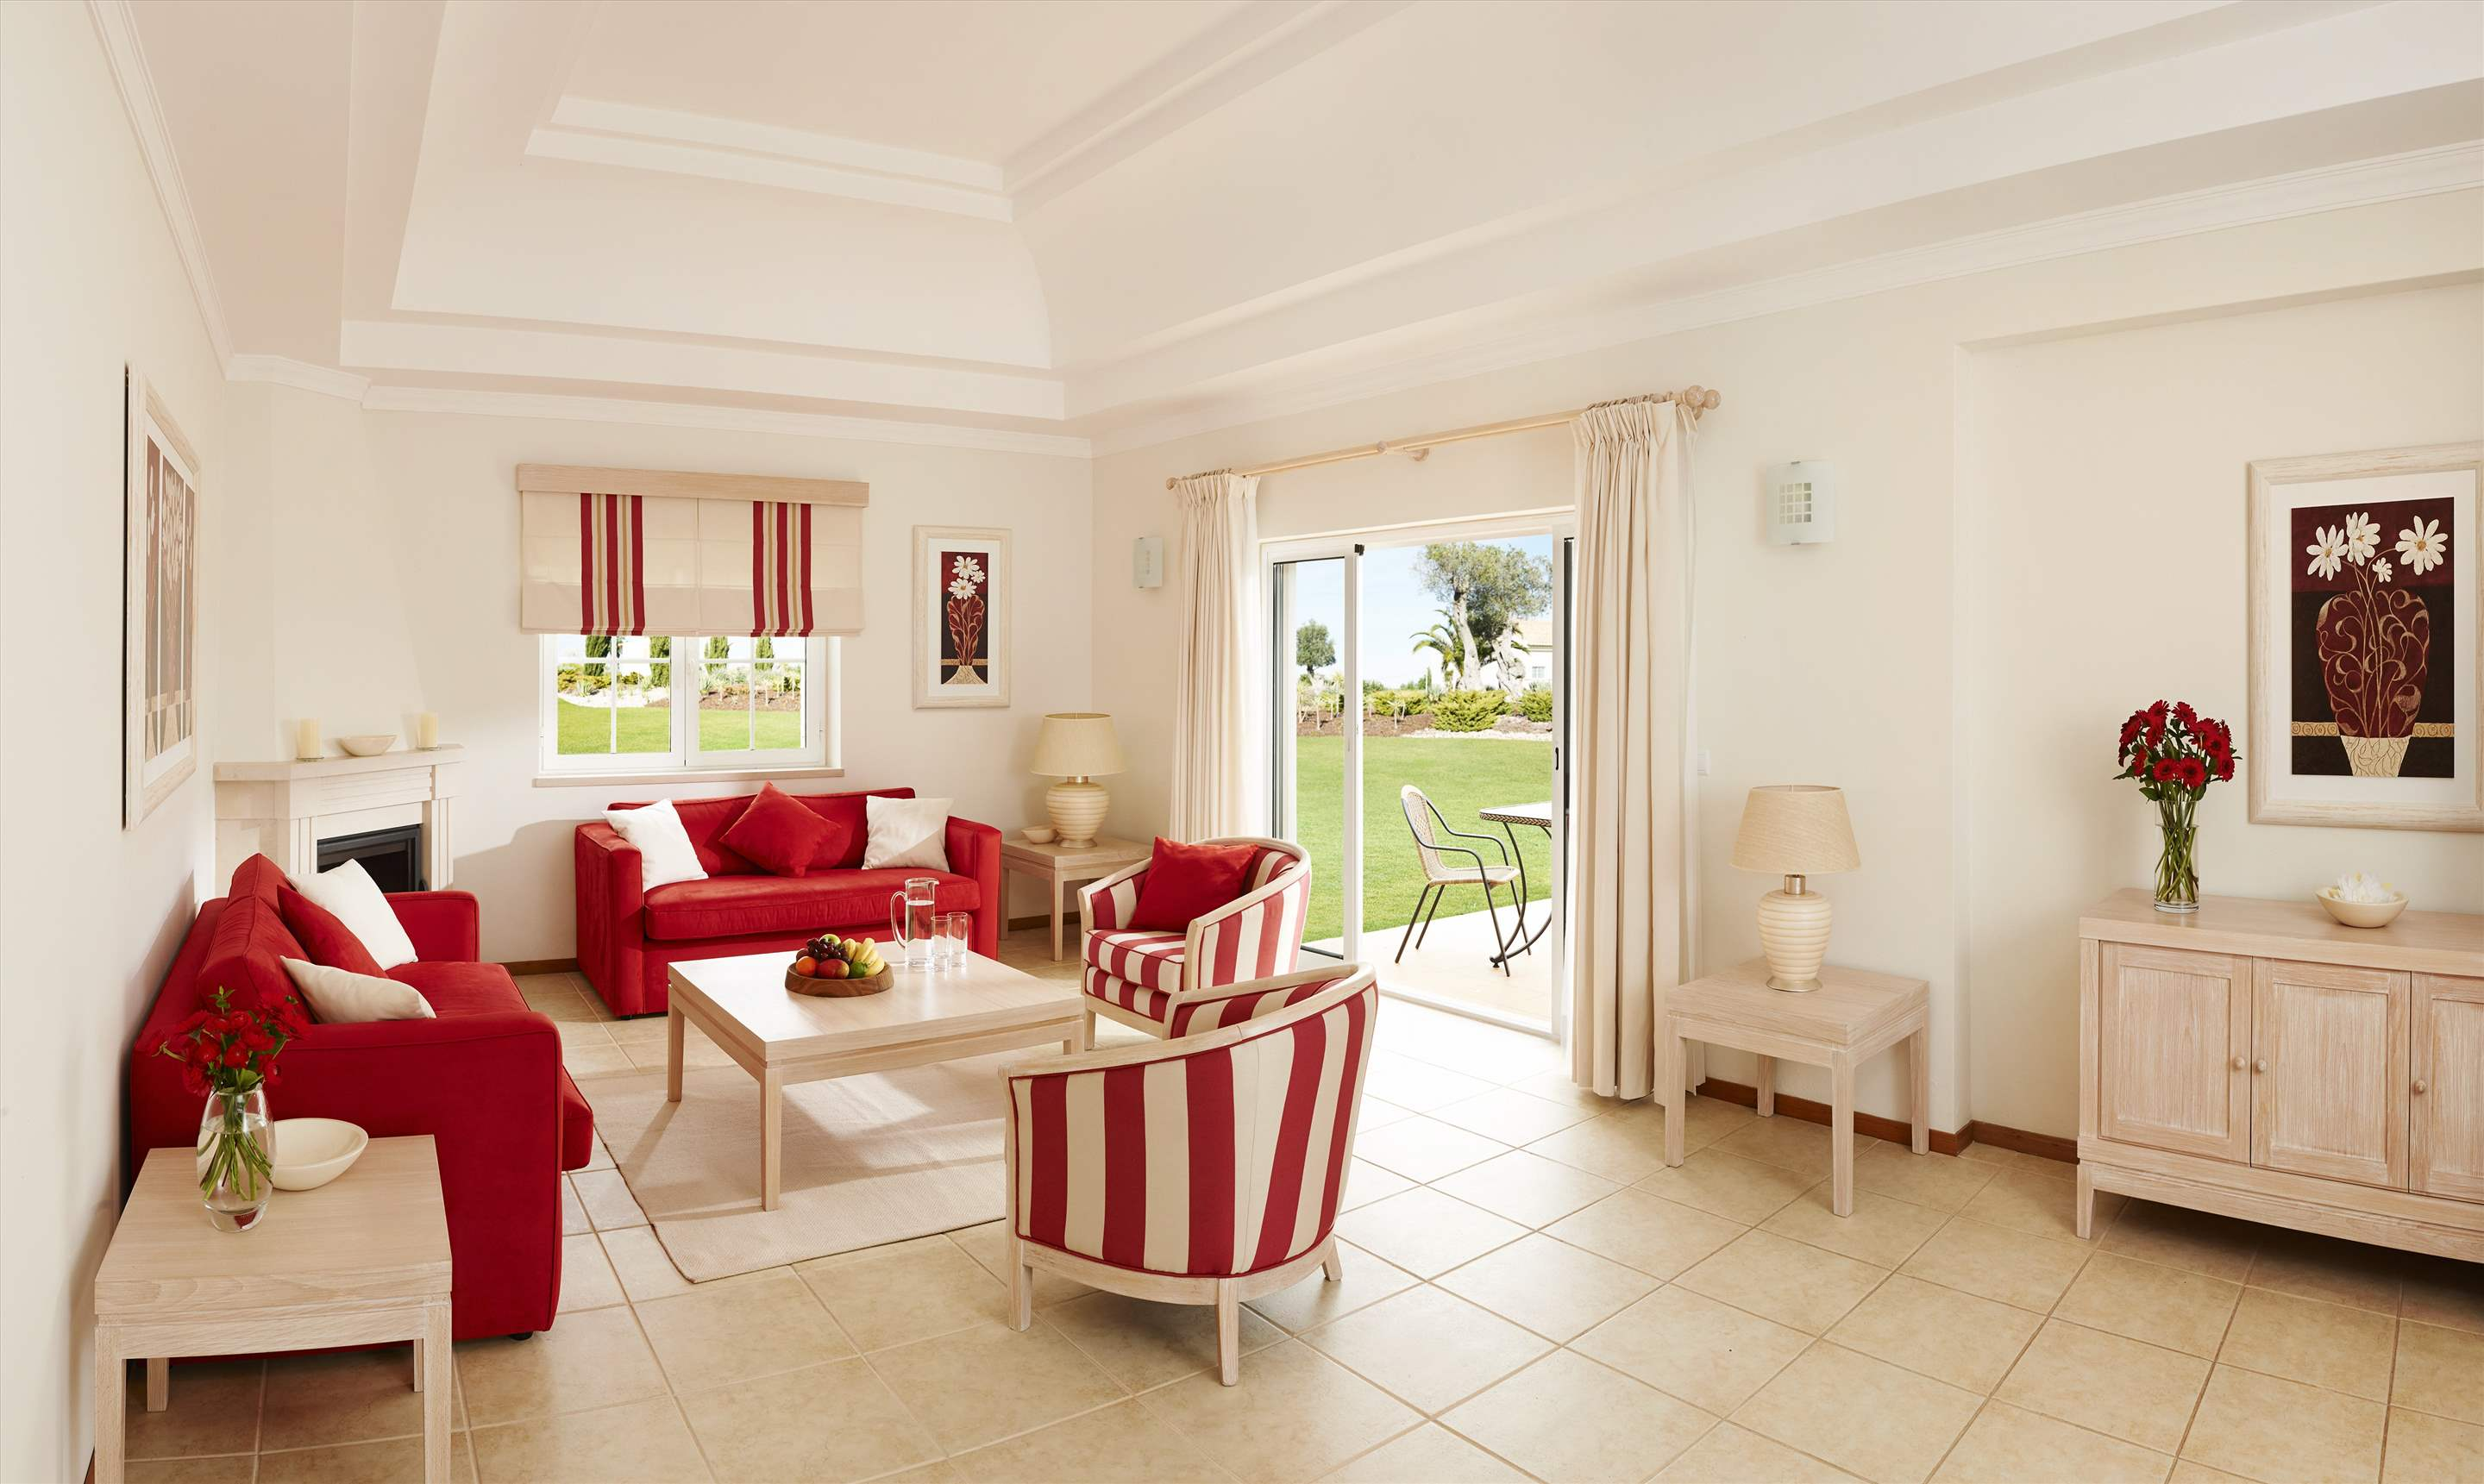 Vale d'Oliveiras 1 Bed Suite Garden View , Self Catering, 1 bedroom apartment in Vale d'Oliveiras Resort & Spa, Algarve Photo #5